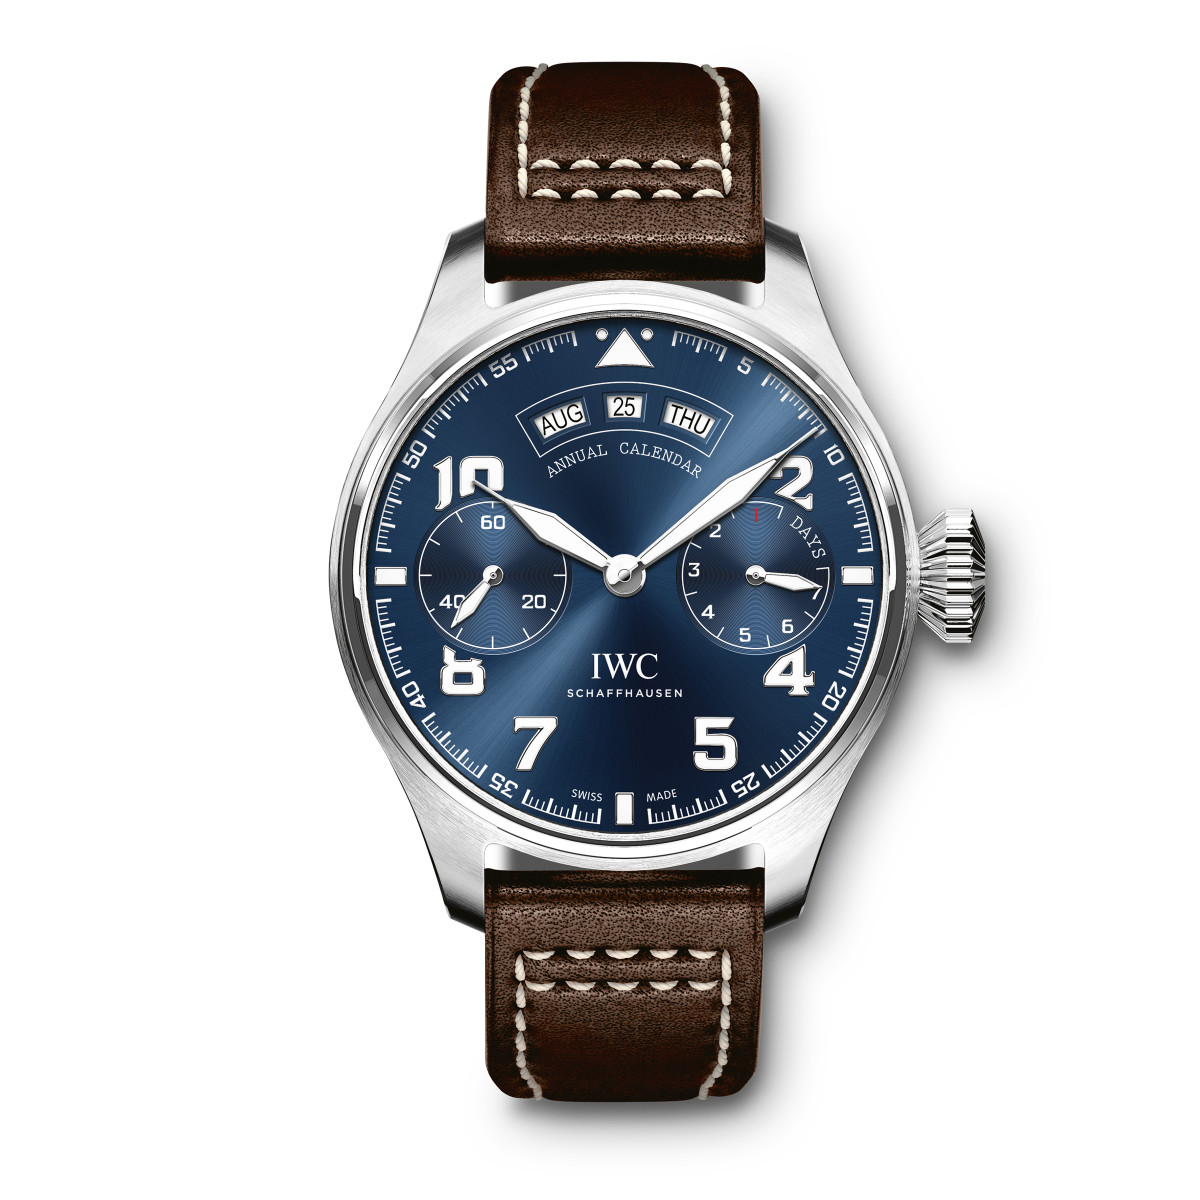 IWC White Gold Let Petit Prince Annual Calendar